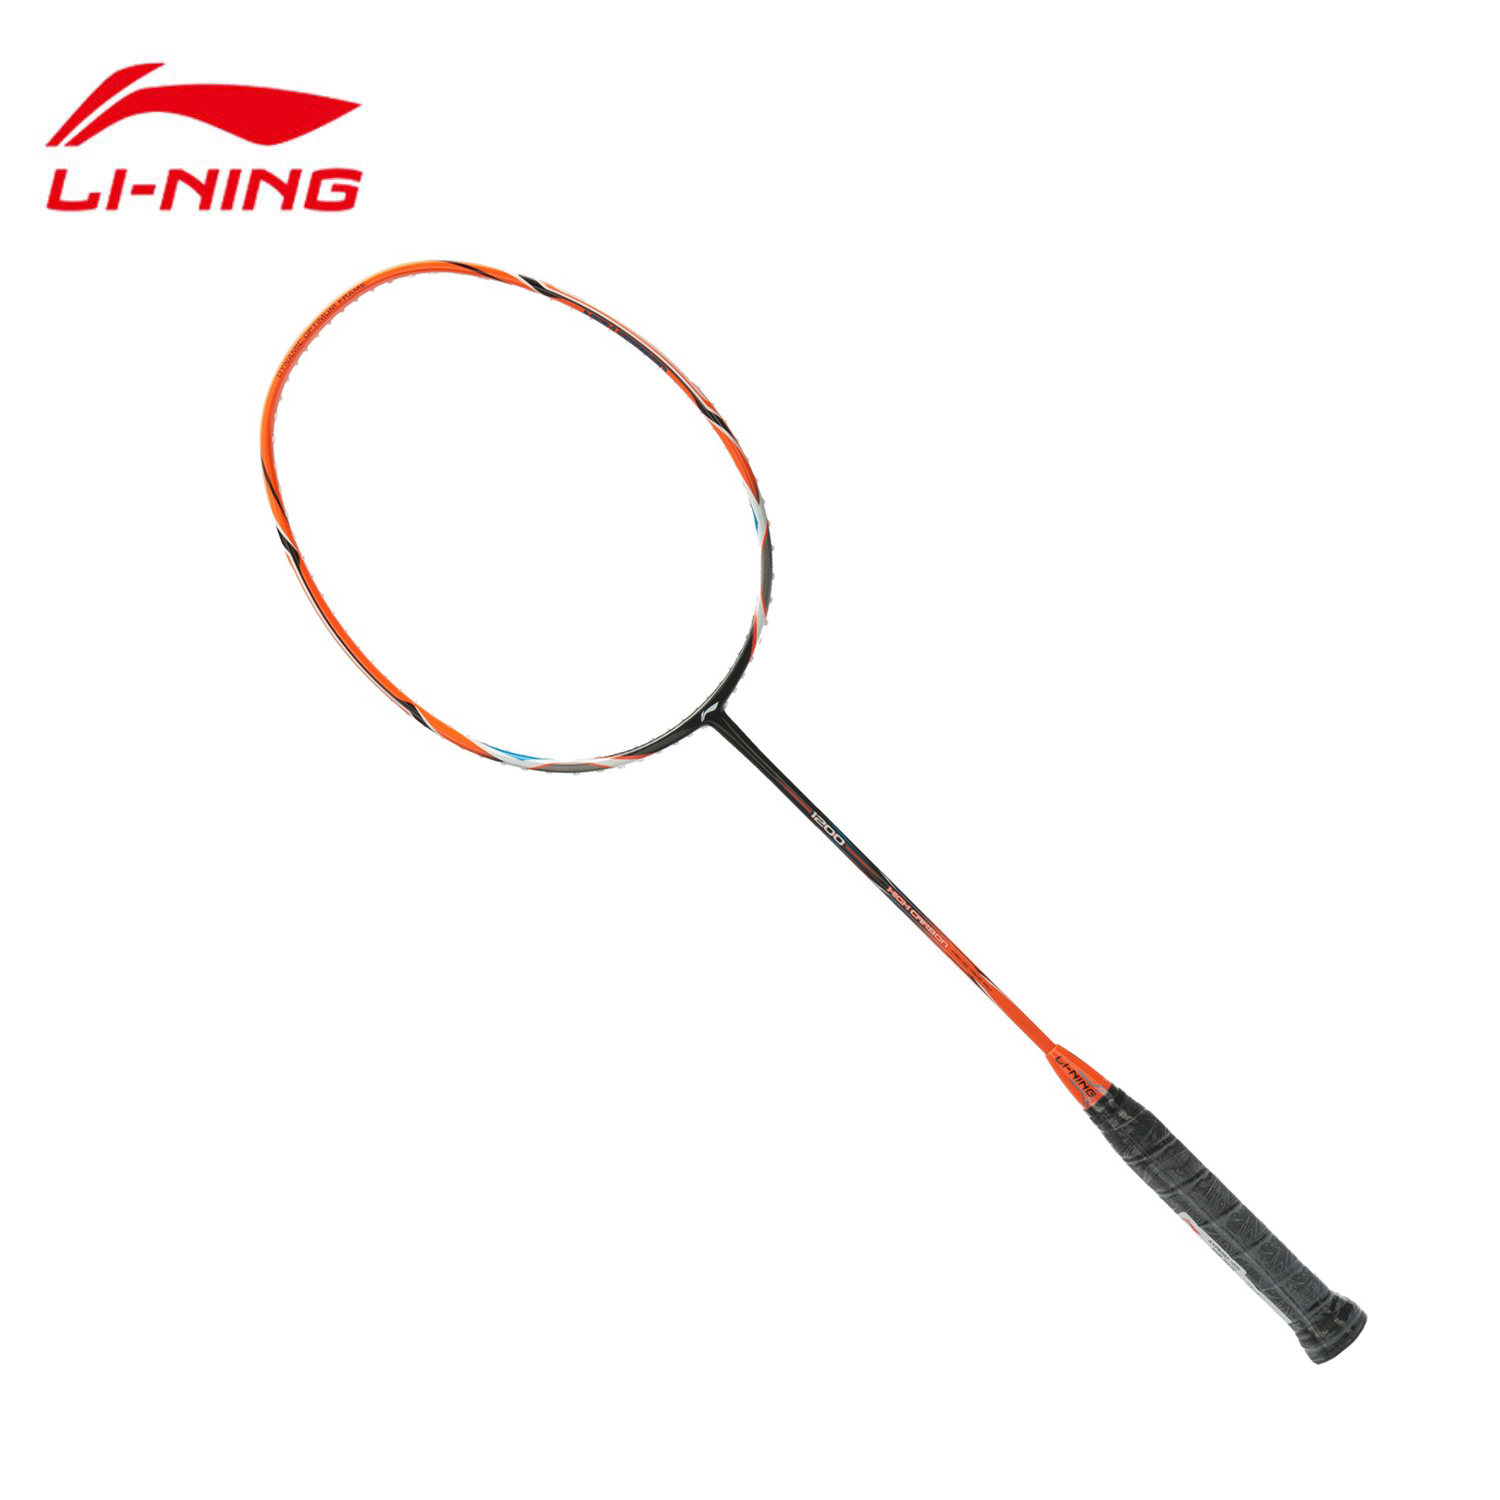 Sporting Goods Tennis & Racquet Sports 1 X Packet Yonex Bg65 Badminton Racket String 100% Genuine Choice Of Colour At All Costs